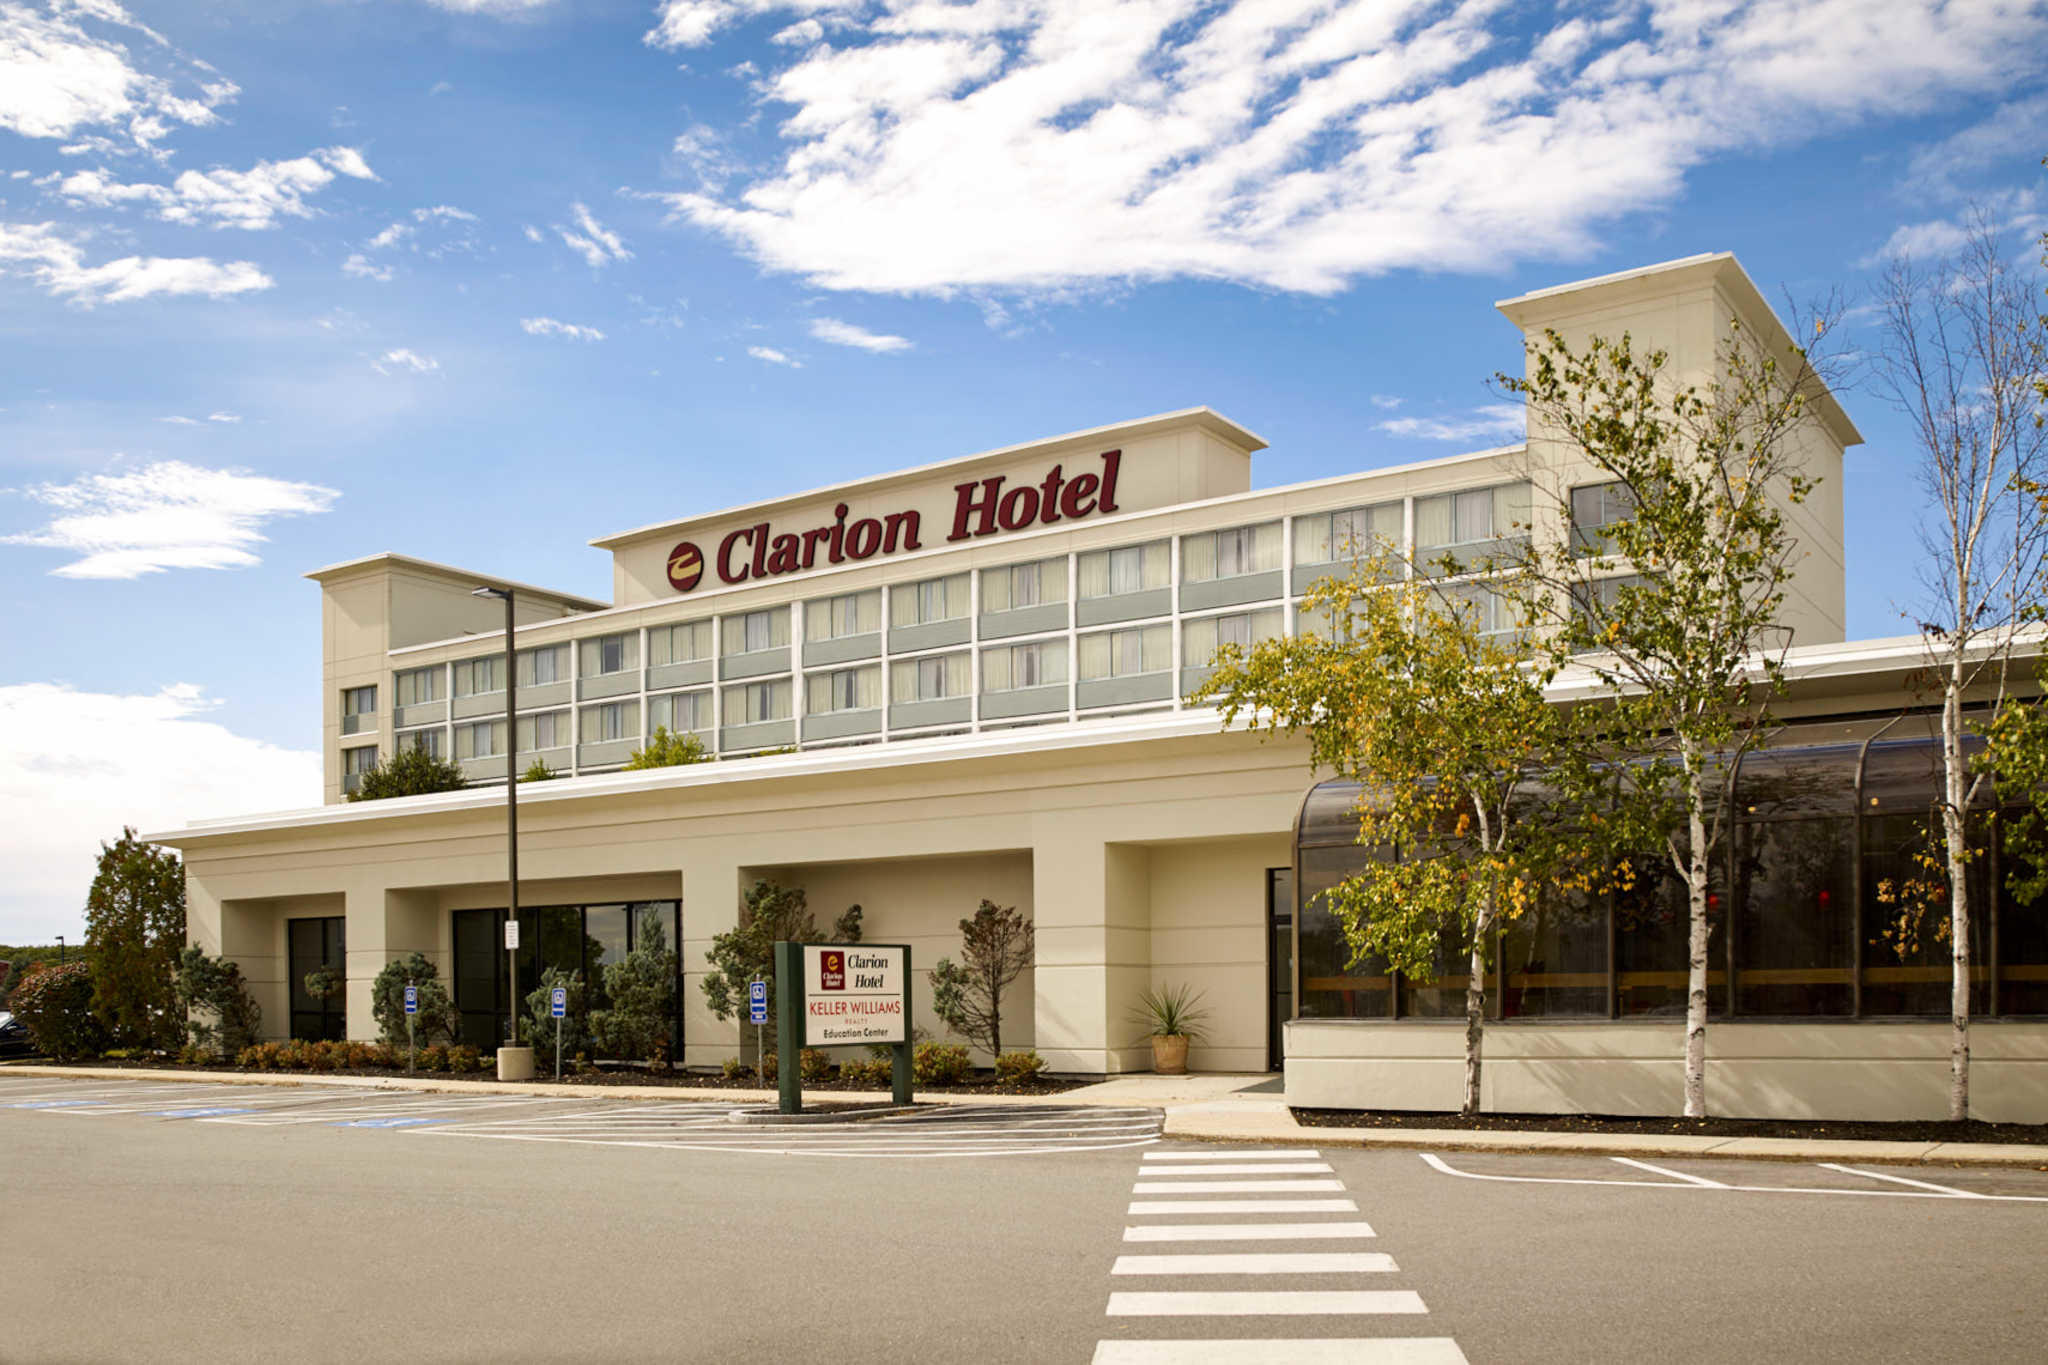 clarion hotel airport portland maine me. Black Bedroom Furniture Sets. Home Design Ideas